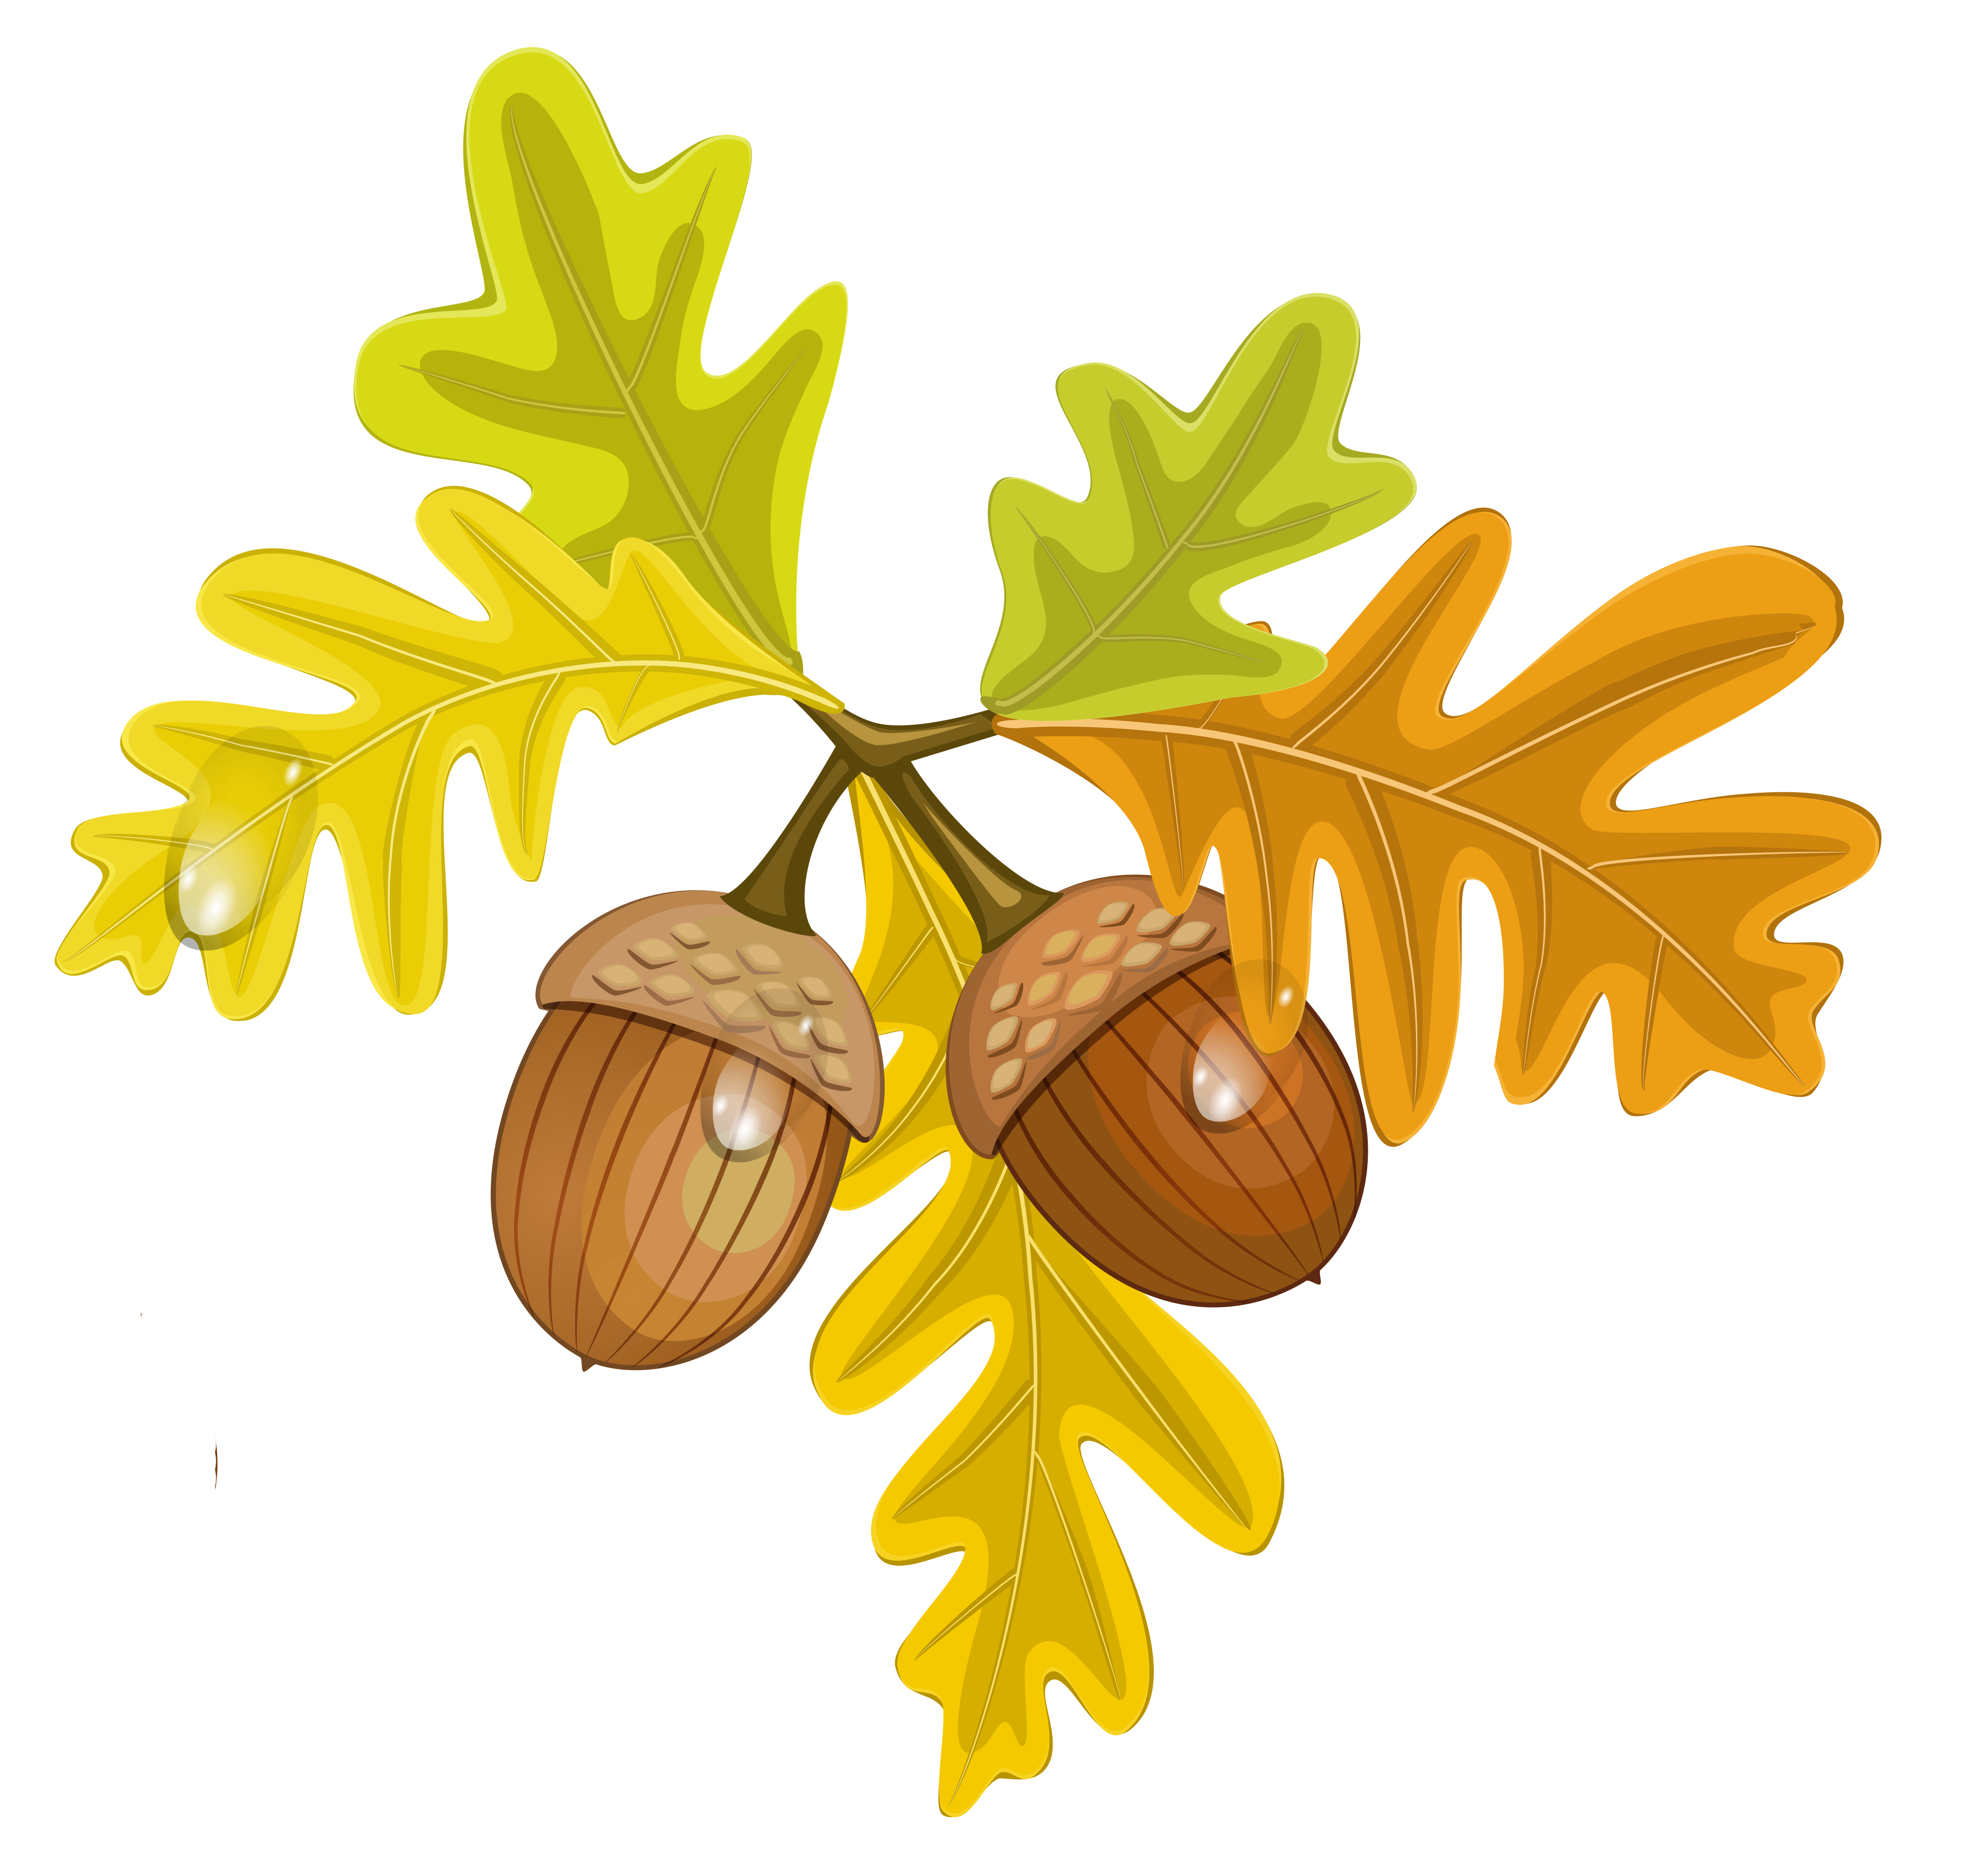 Oak tree leaf clipart jpg transparent download Transparent Fall Leaves with Acorns | Gallery Yopriceville - High ... jpg transparent download